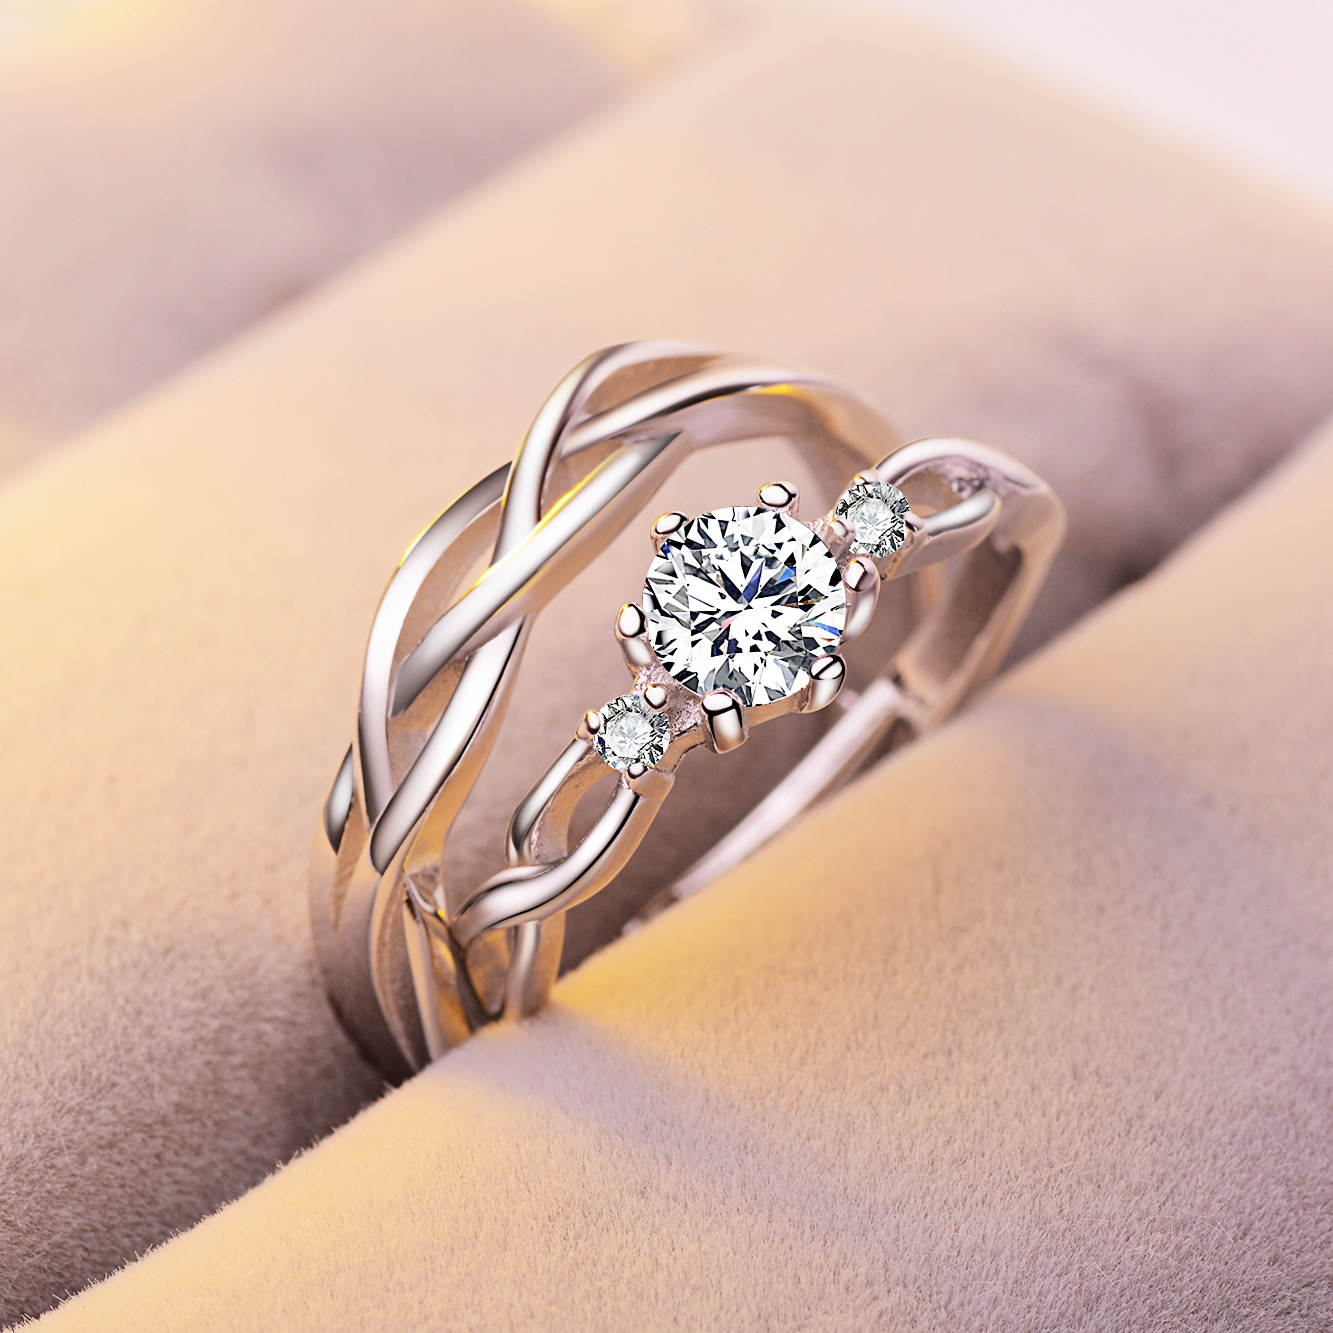 Fashion Simple Opening Ring Couple Ring Female Zircon Six Claw Crown Wedding Ring Accessories